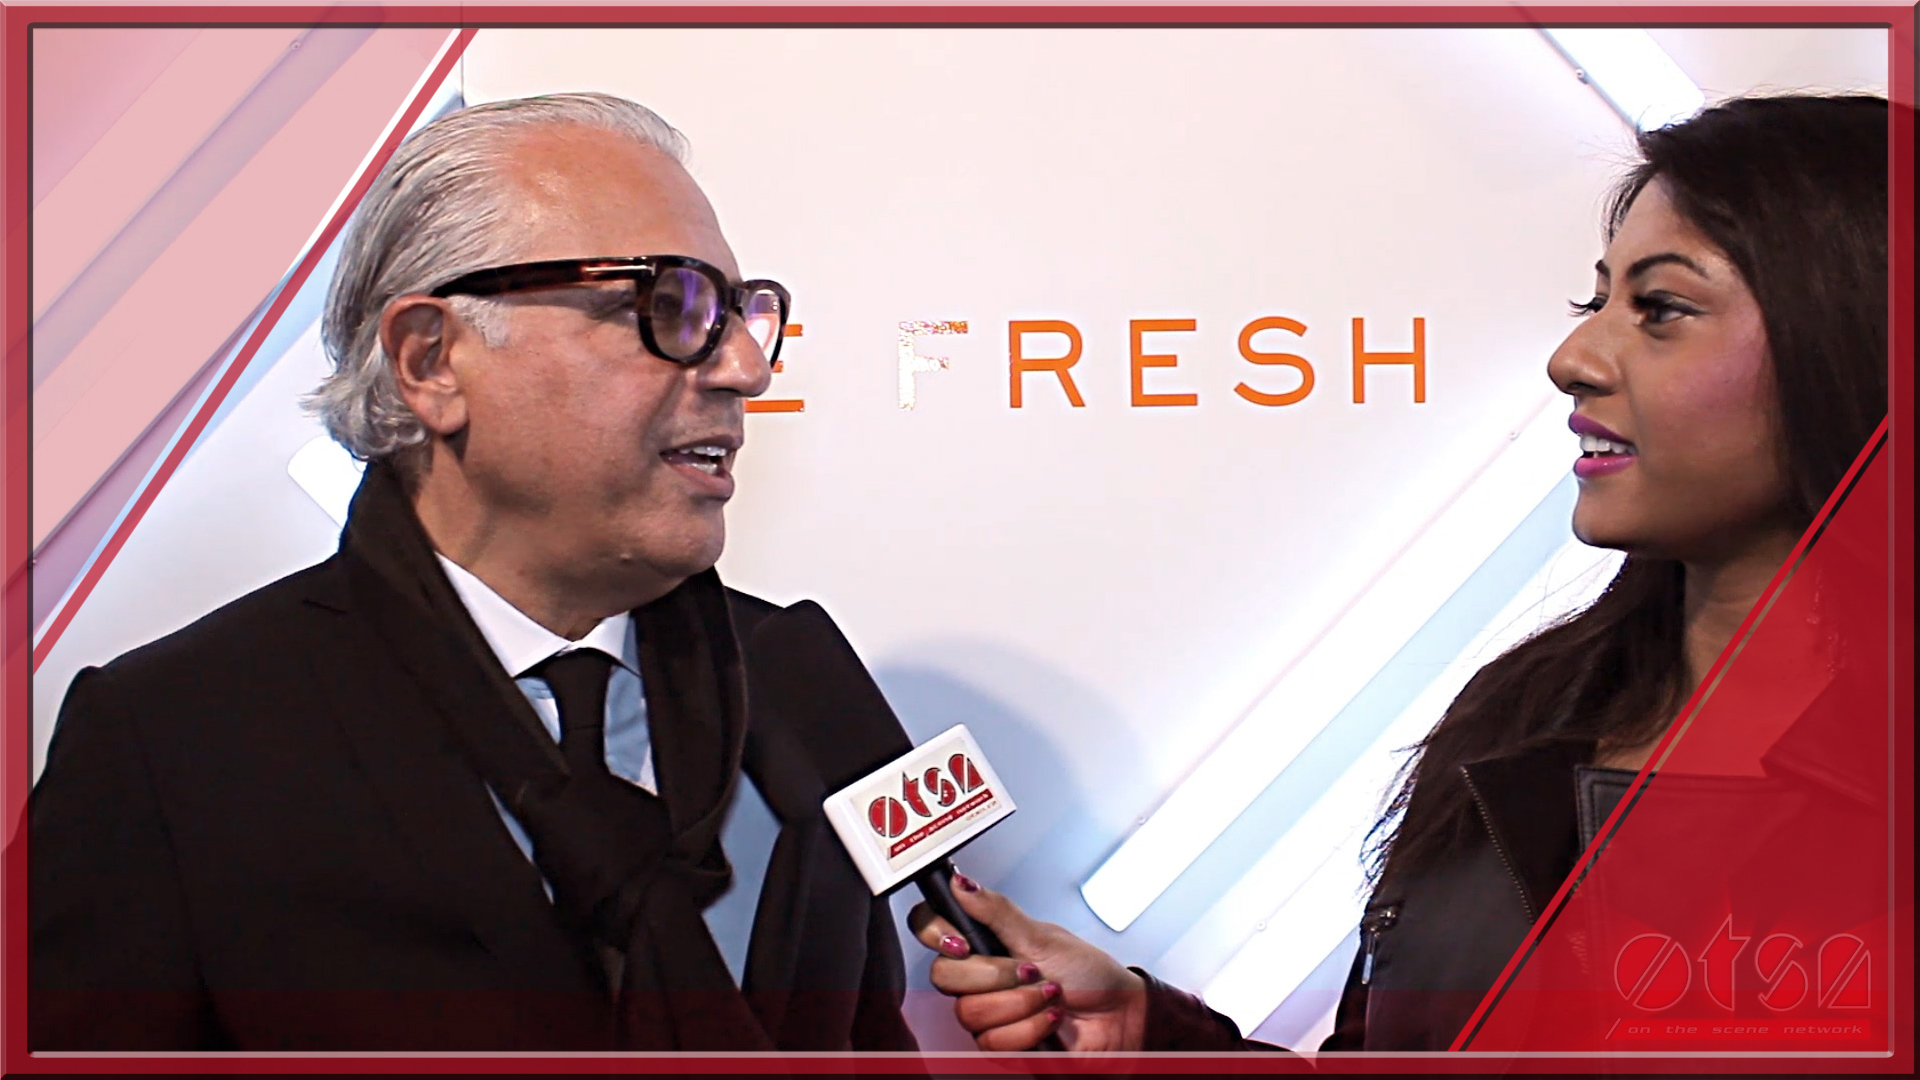 2014 World MasterCard Fashion Week with Joe Mimran and Jully Black